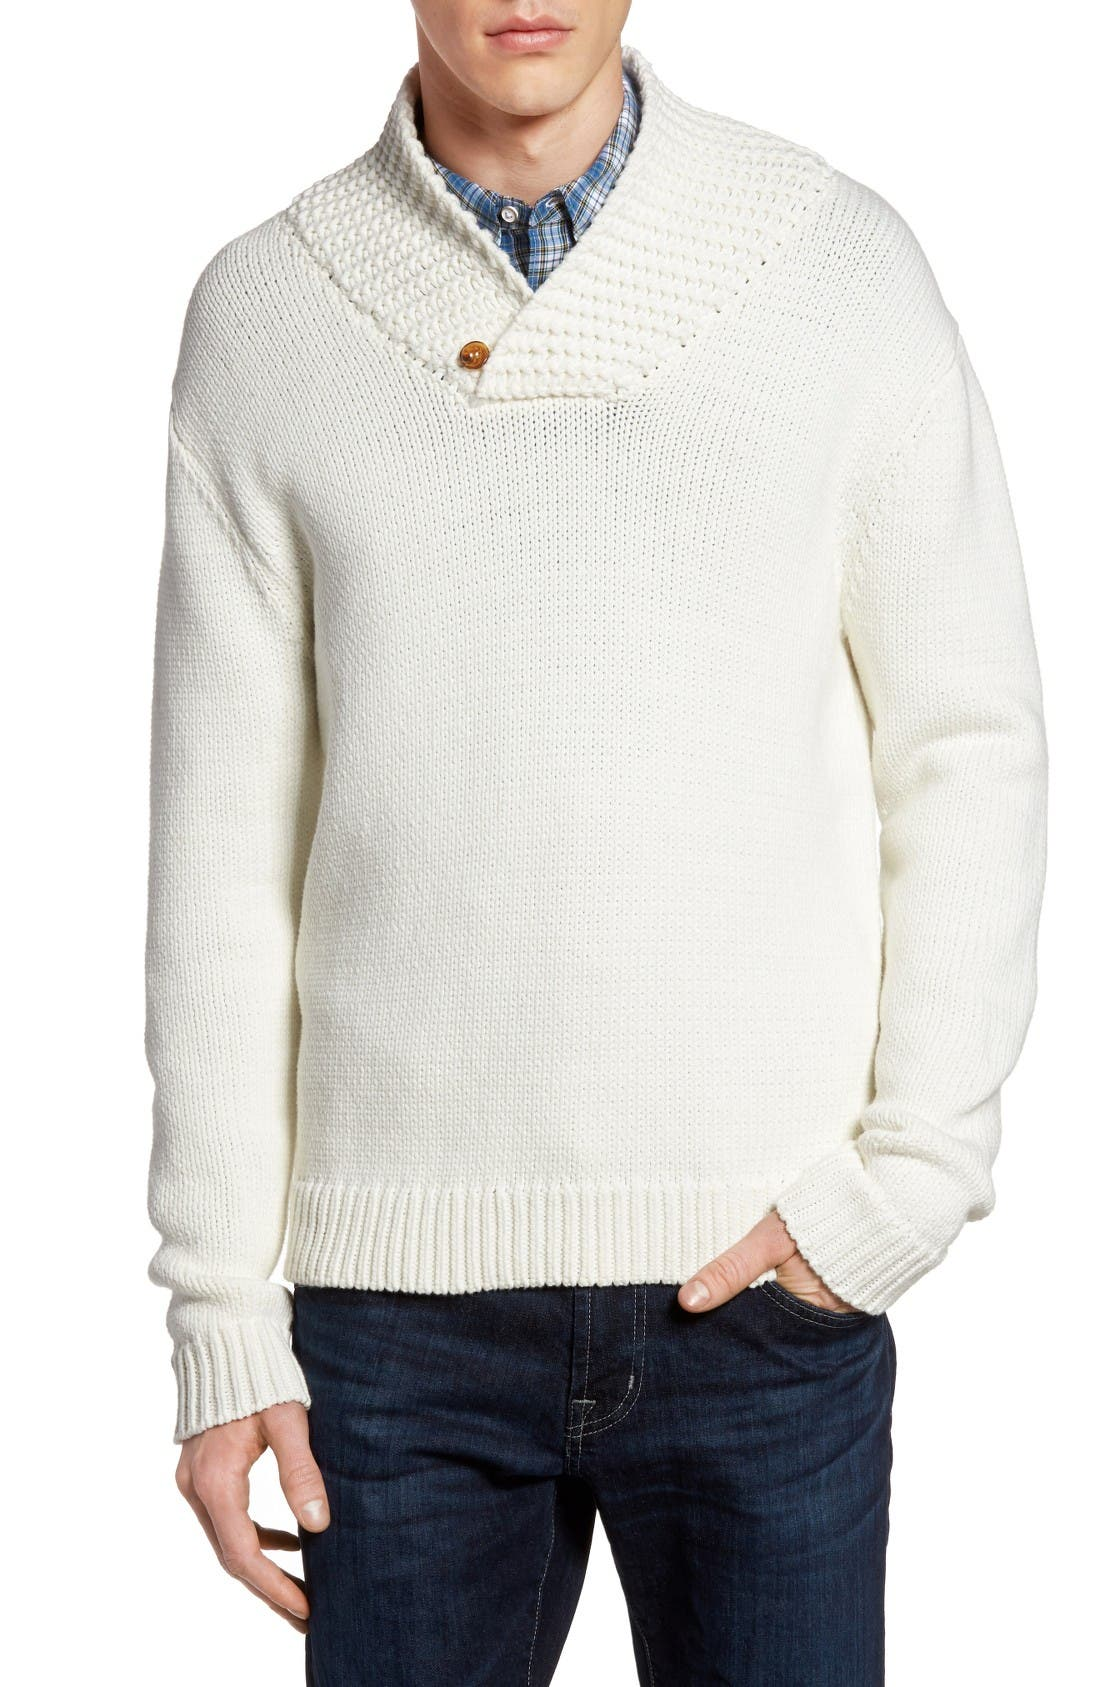 Flux Sweater,                             Main thumbnail 1, color,                             Winter White